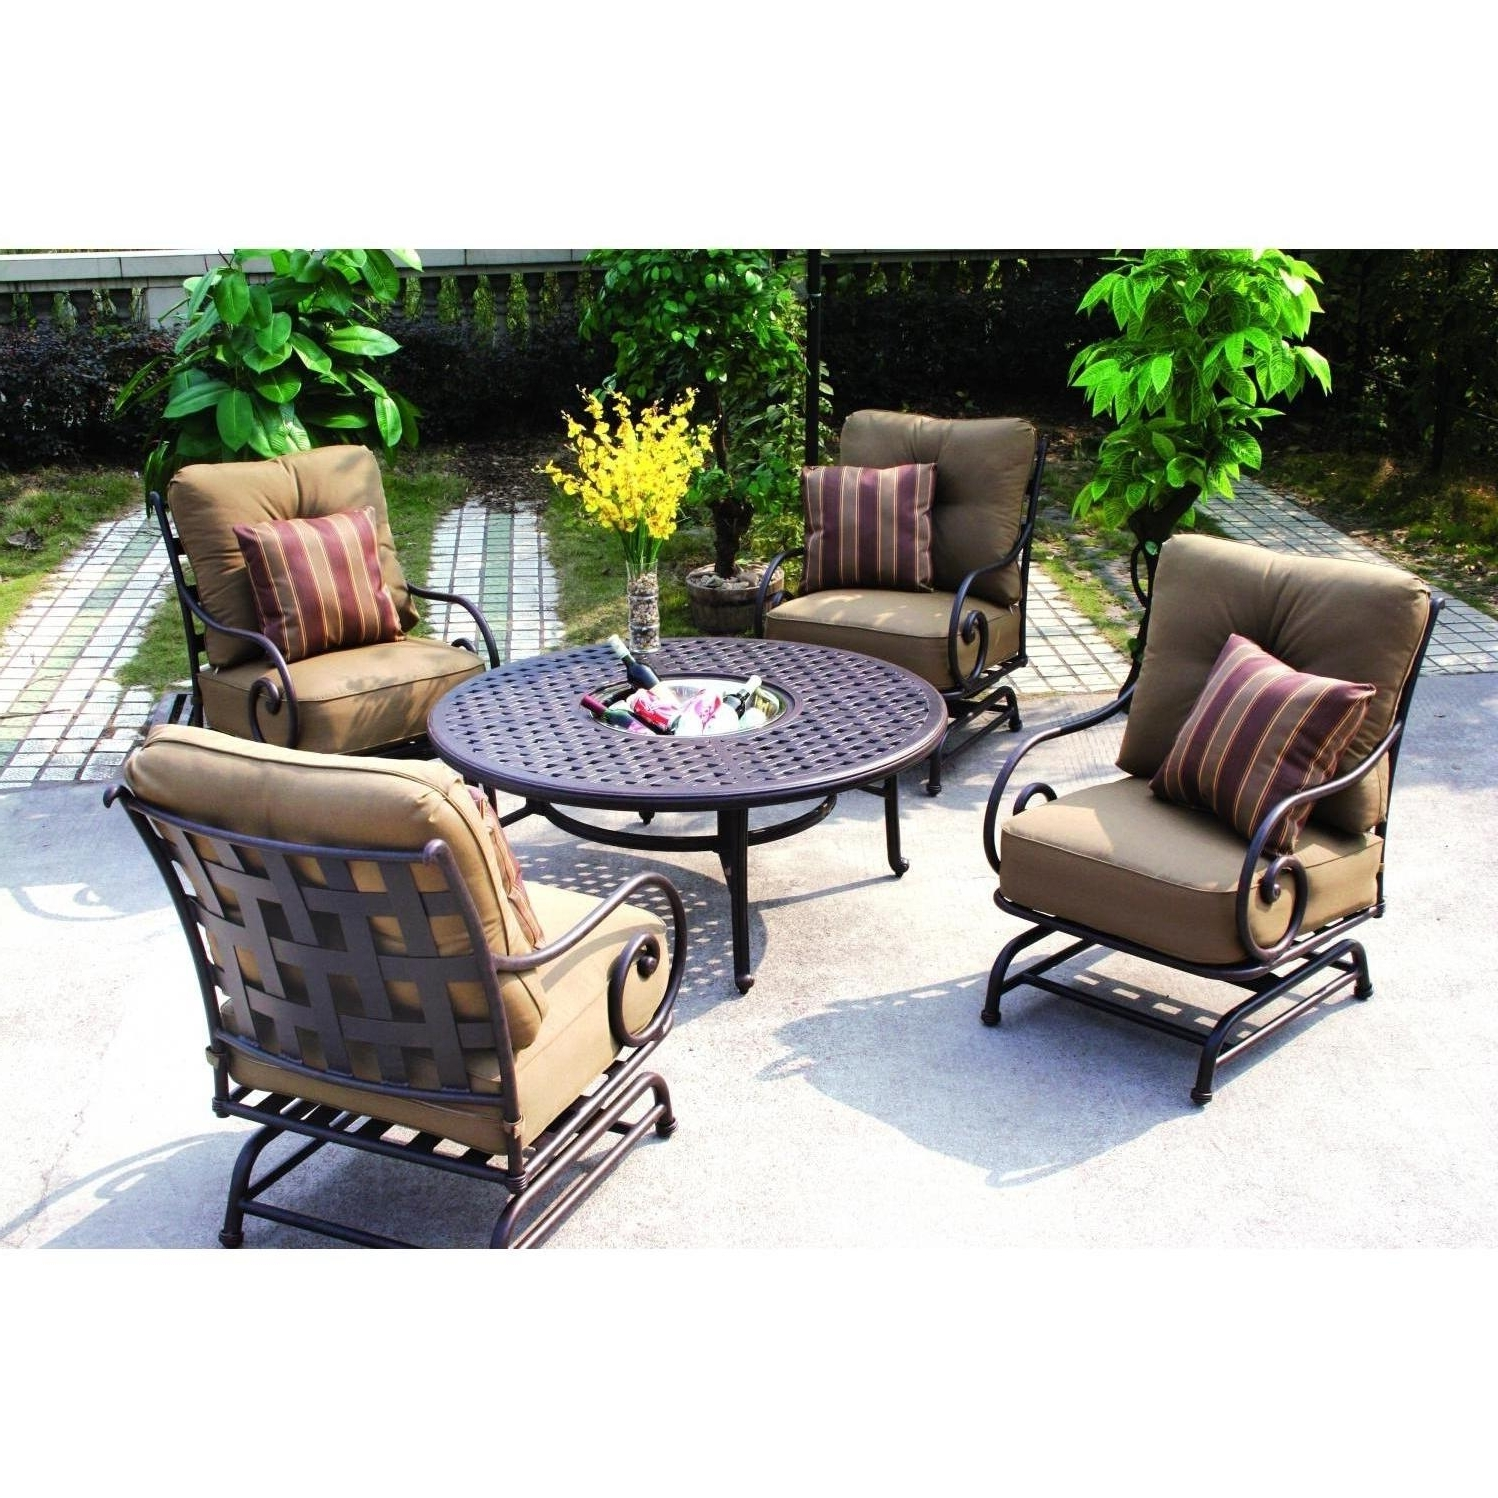 5 Piece Patio Conversation Sets Regarding Newest Darlee Malibu 5 Piece Cast Aluminum Patio Conversation Seating Set (View 20 of 20)